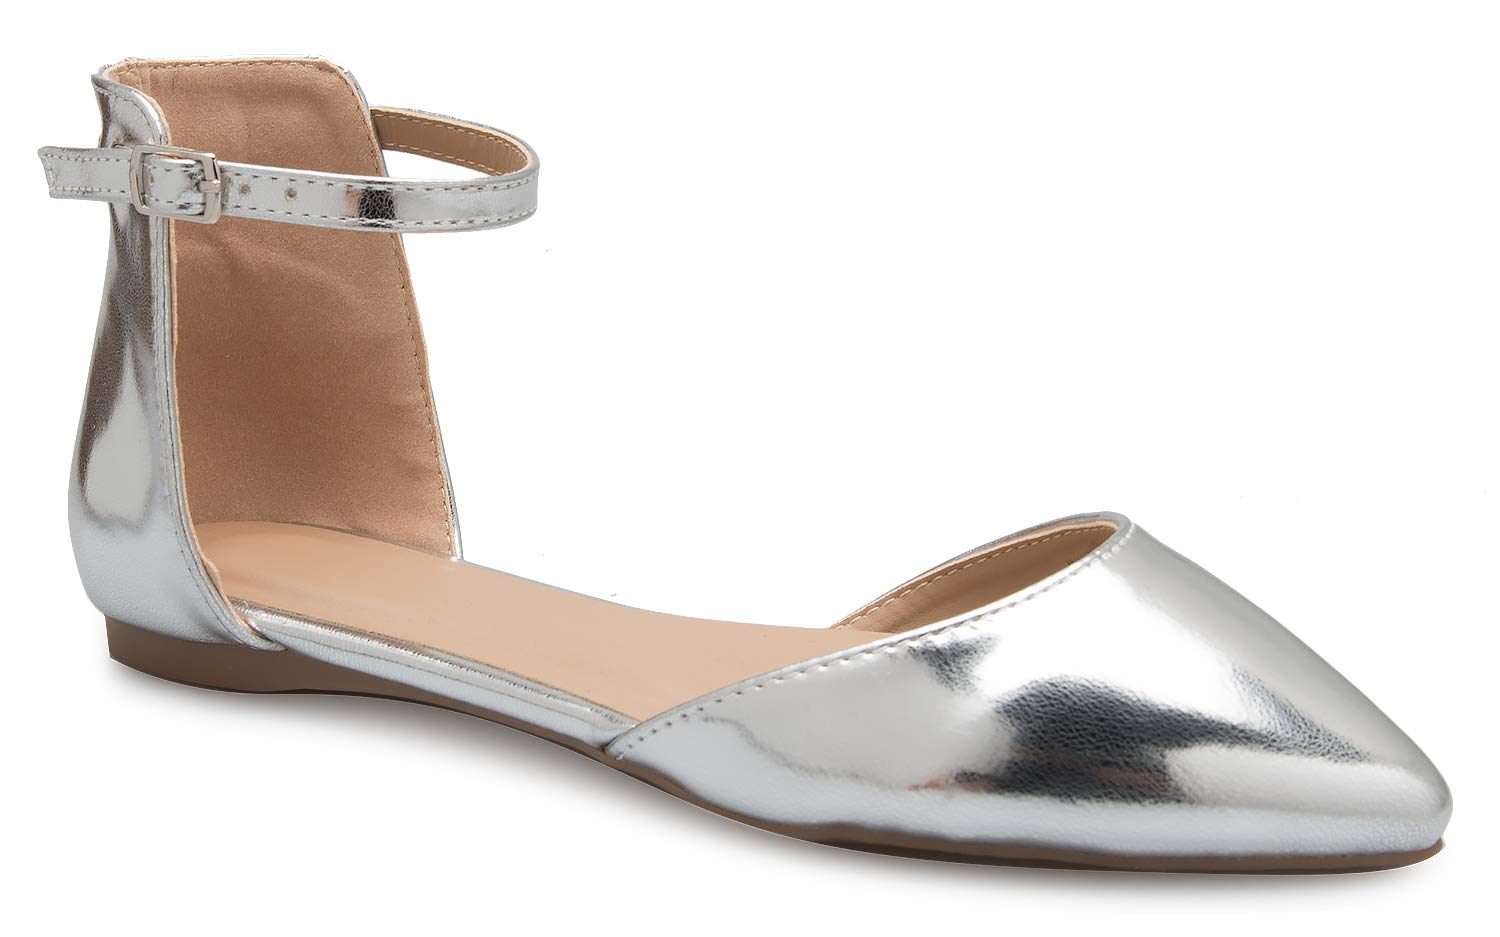 OLIVIA K Women's D'Orsay Pointed Toe Fashion Ballet Flat Buckle Ankle Strap Closure